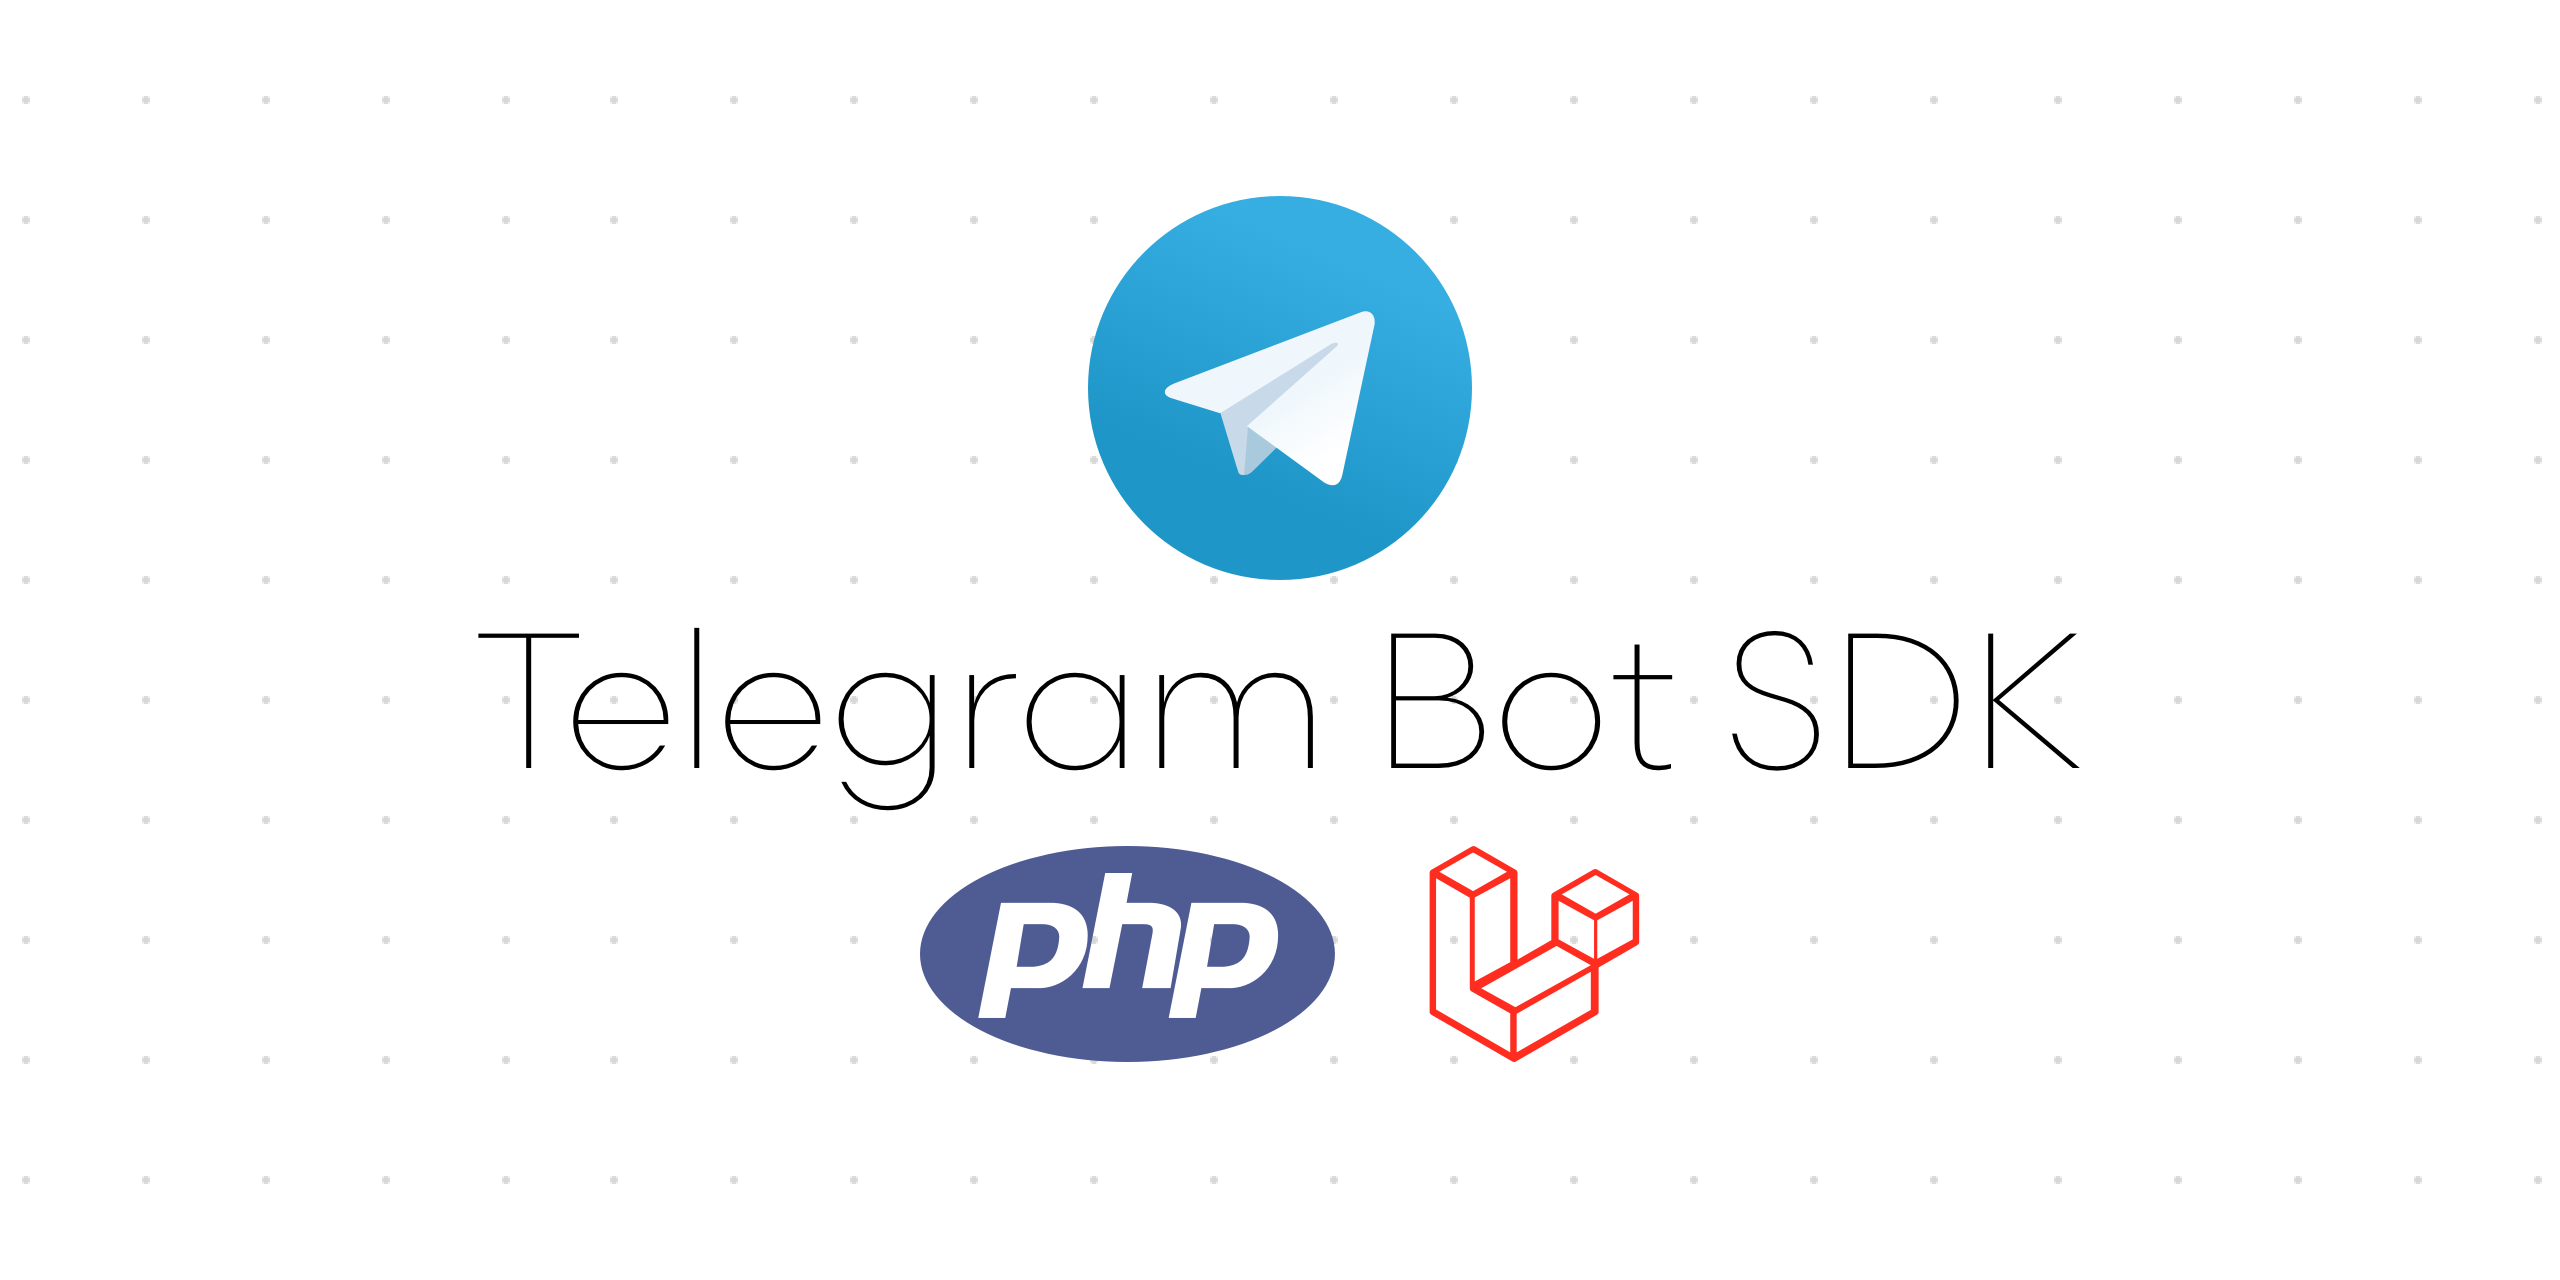 telegram-bot-sdk